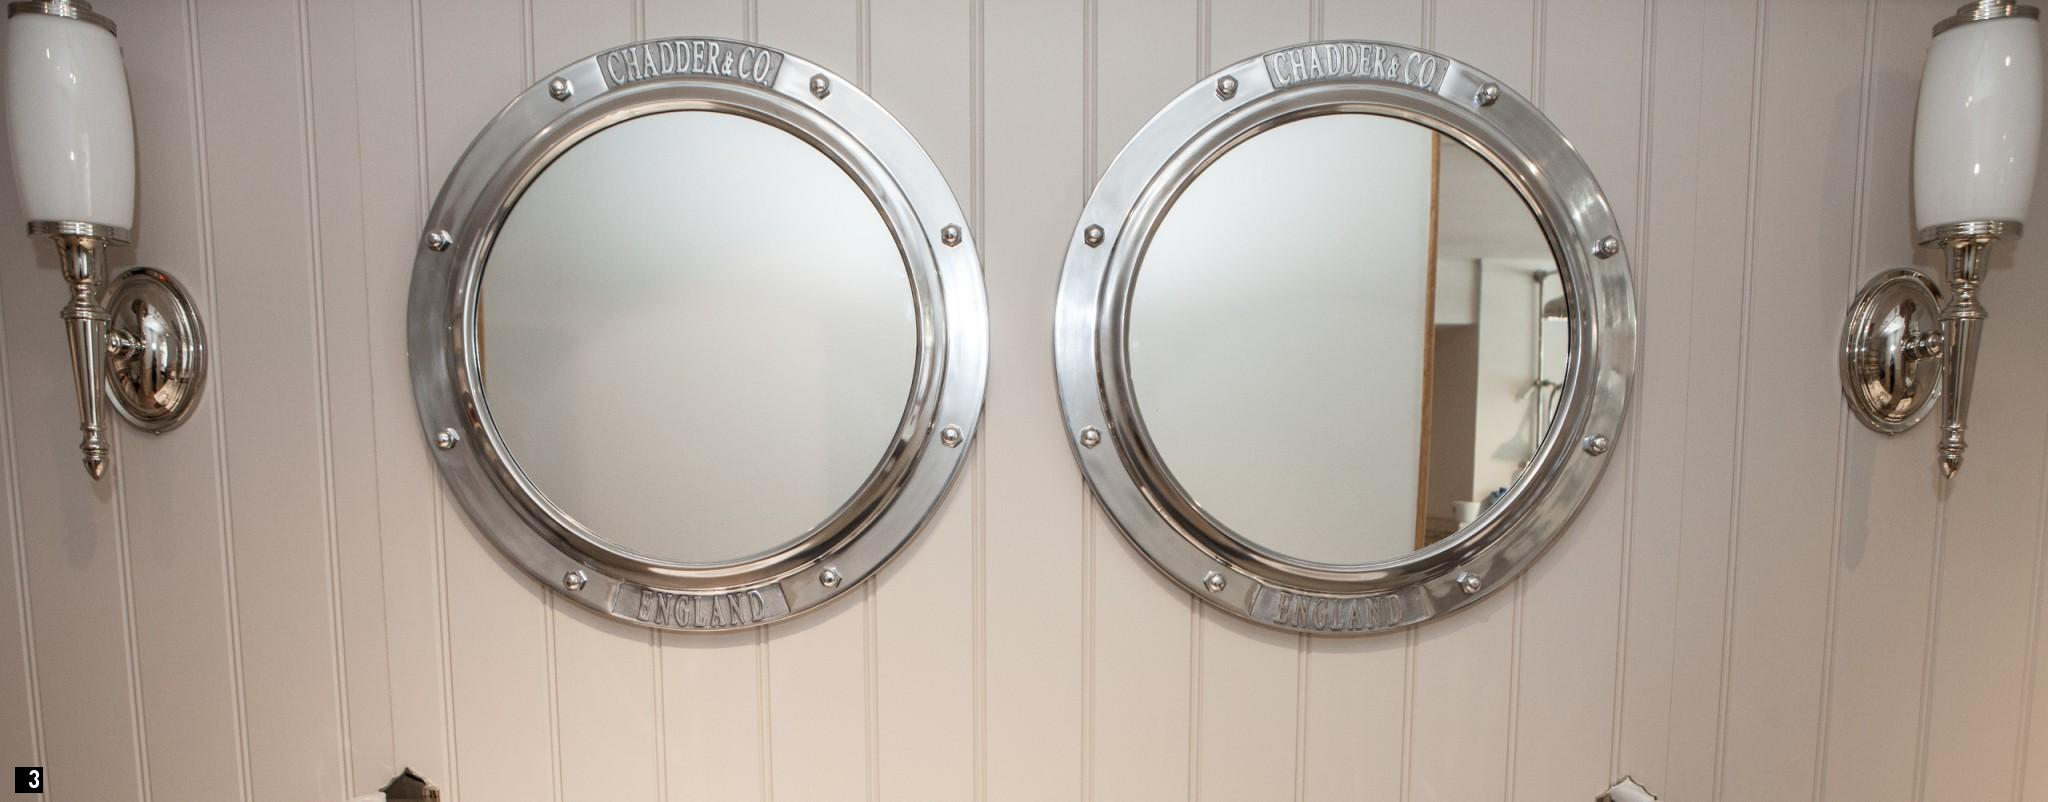 Porthole Mirrors Product Categories Chadder Amp Co